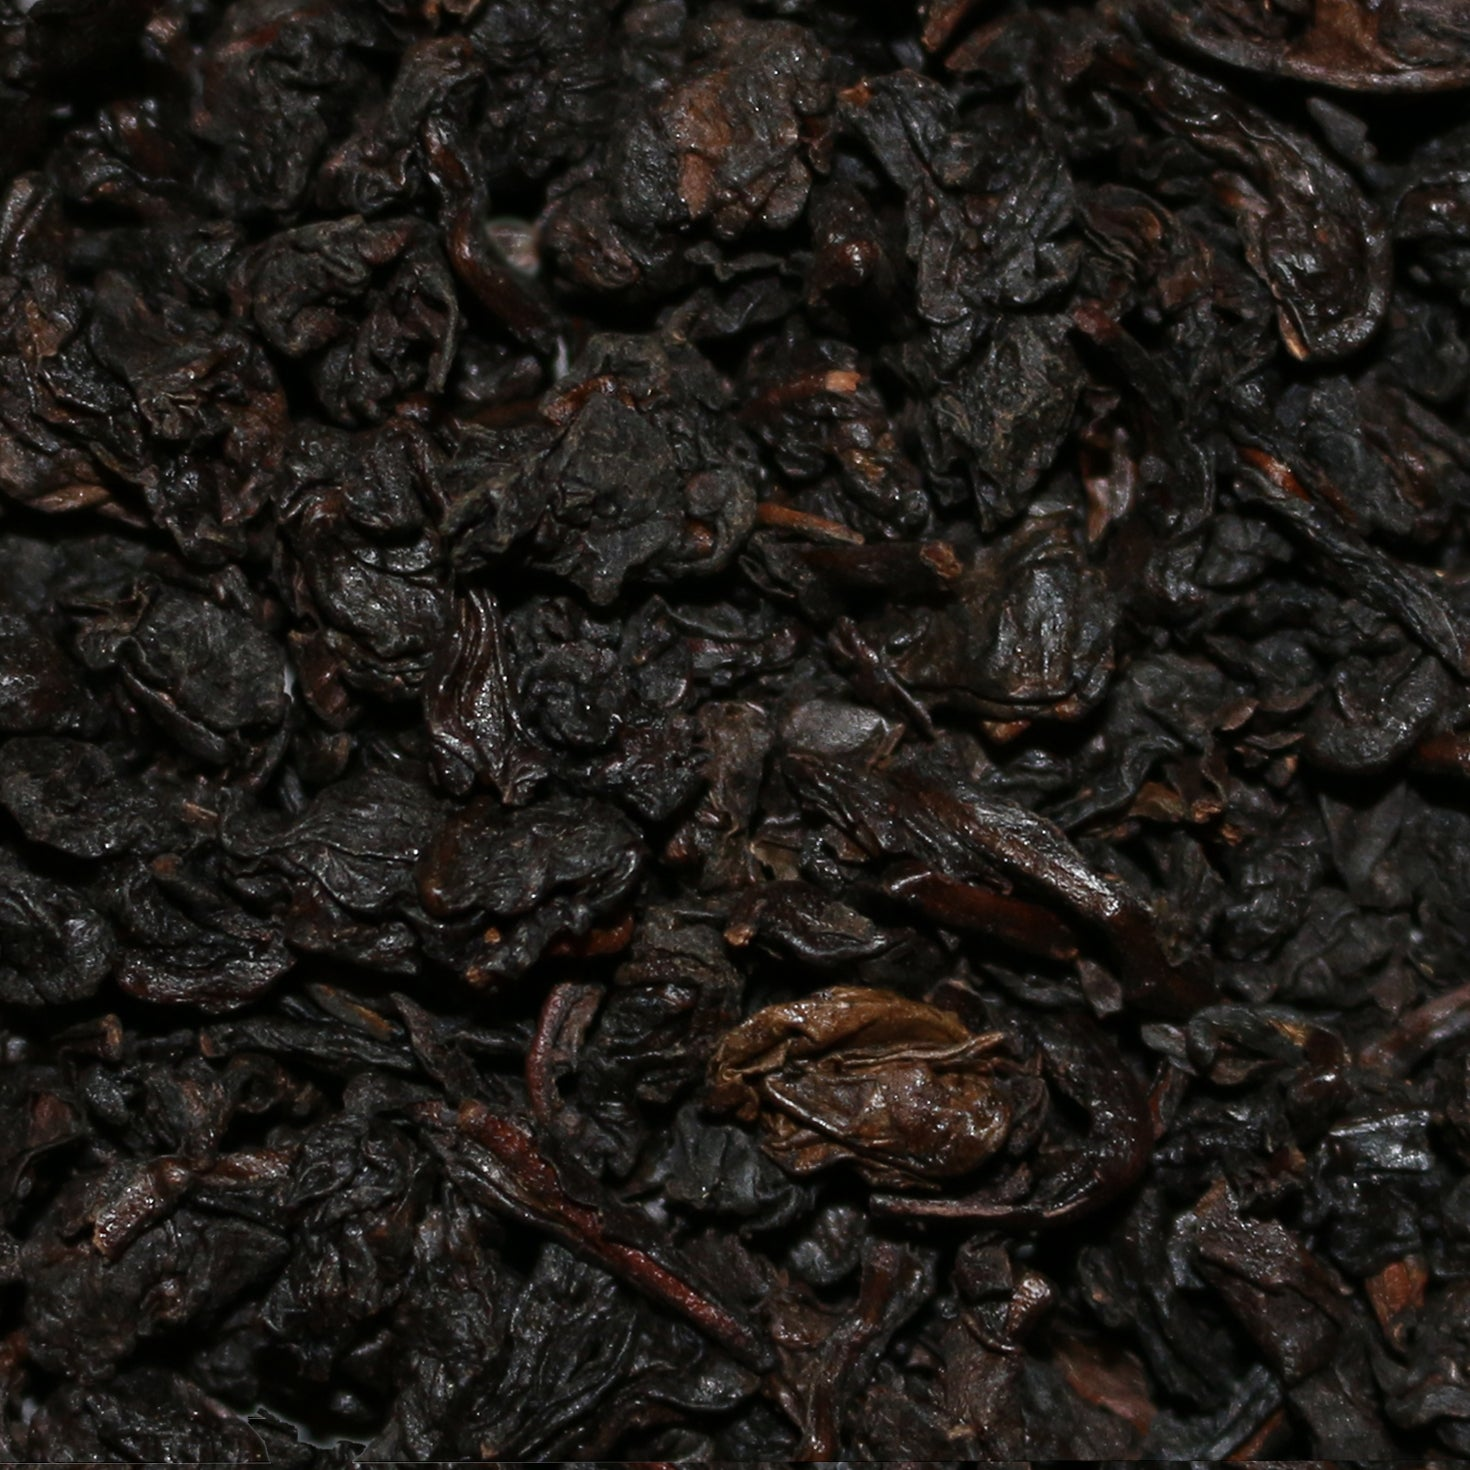 Tie Guan Yin Aged & Charcoal Roasted Anxi China Wulong Tea